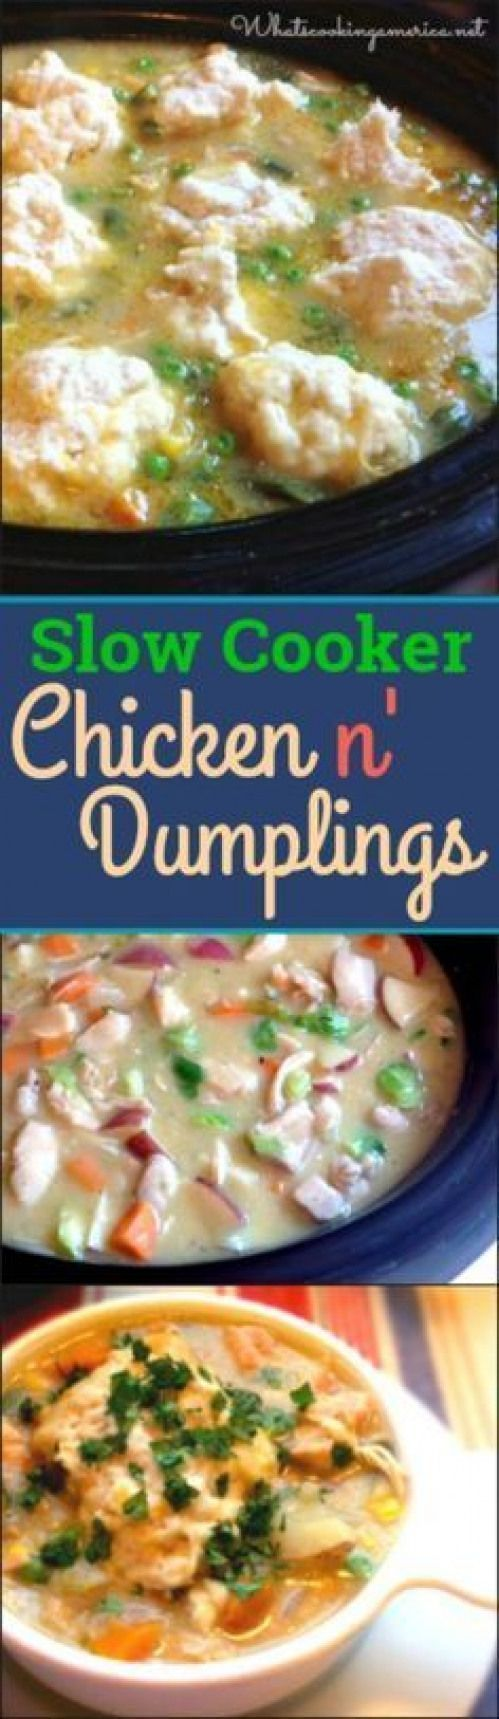 A classic Chicken and Dumplings recipe easy to dump and go in the slow cooker chicken dumplings s&; A classic Chicken and Dumplings recipe easy to dump and go in the slow cooker chicken dumplings s&; Gelin gelin0639[…] #Chicken #classic #Cooker #dump #Dumplings #Easy #Recipe #Slow #slow cooker detox soup crock pot #chickendumplingscrockpot A classic Chicken and Dumplings recipe easy to dump and go in the slow cooker chicken dumplings s&; A classic Chicken and Dumplings recipe easy to dump a